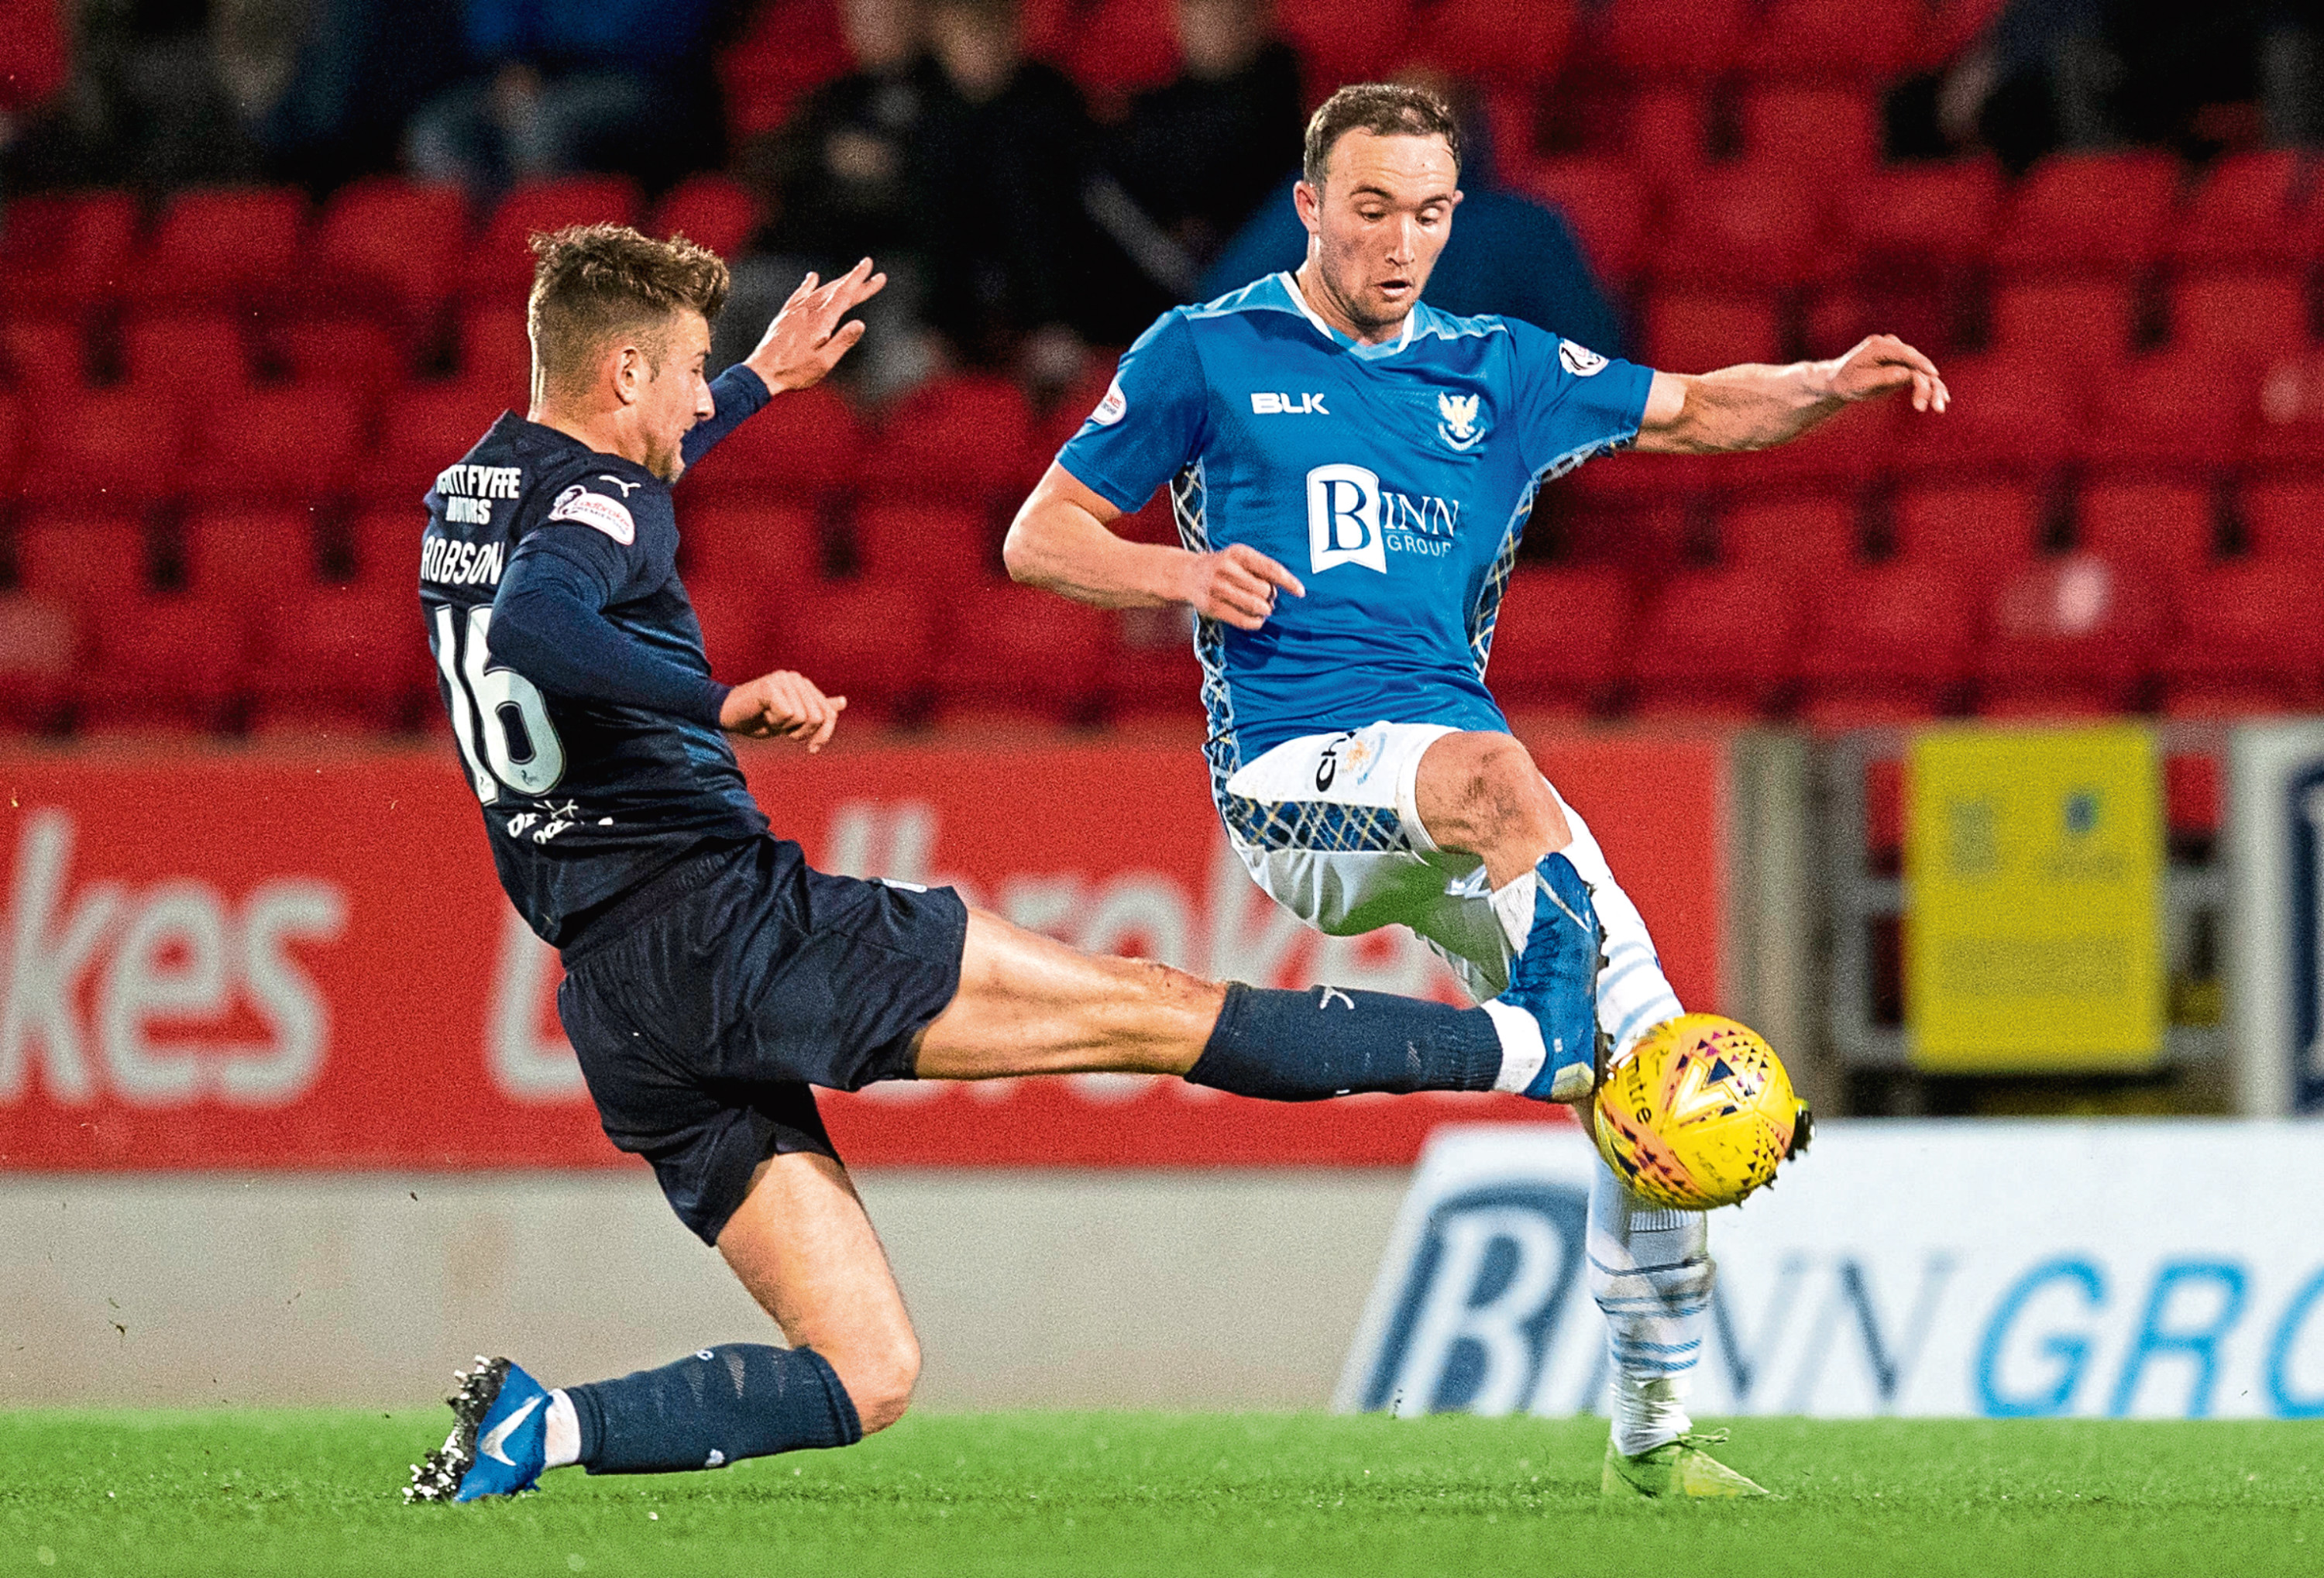 St Johnstone striker Chris Kane takes on Dundee's Ethan Robson earlier this month at McDiarmid Park.